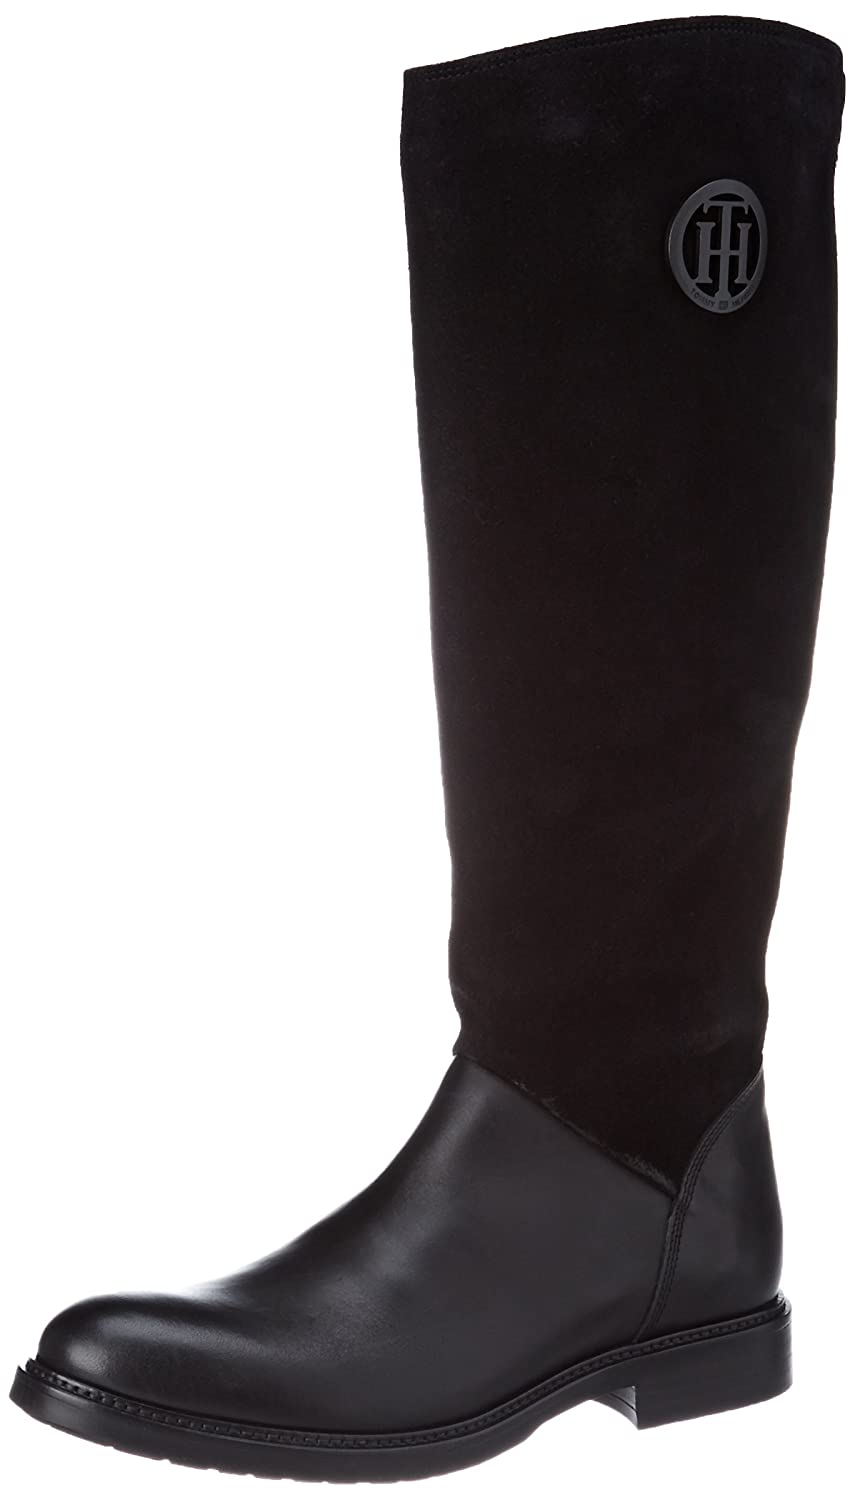 Womens H1285olly 18c Ankle Riding Boots Tommy Hilfiger RhfAHf